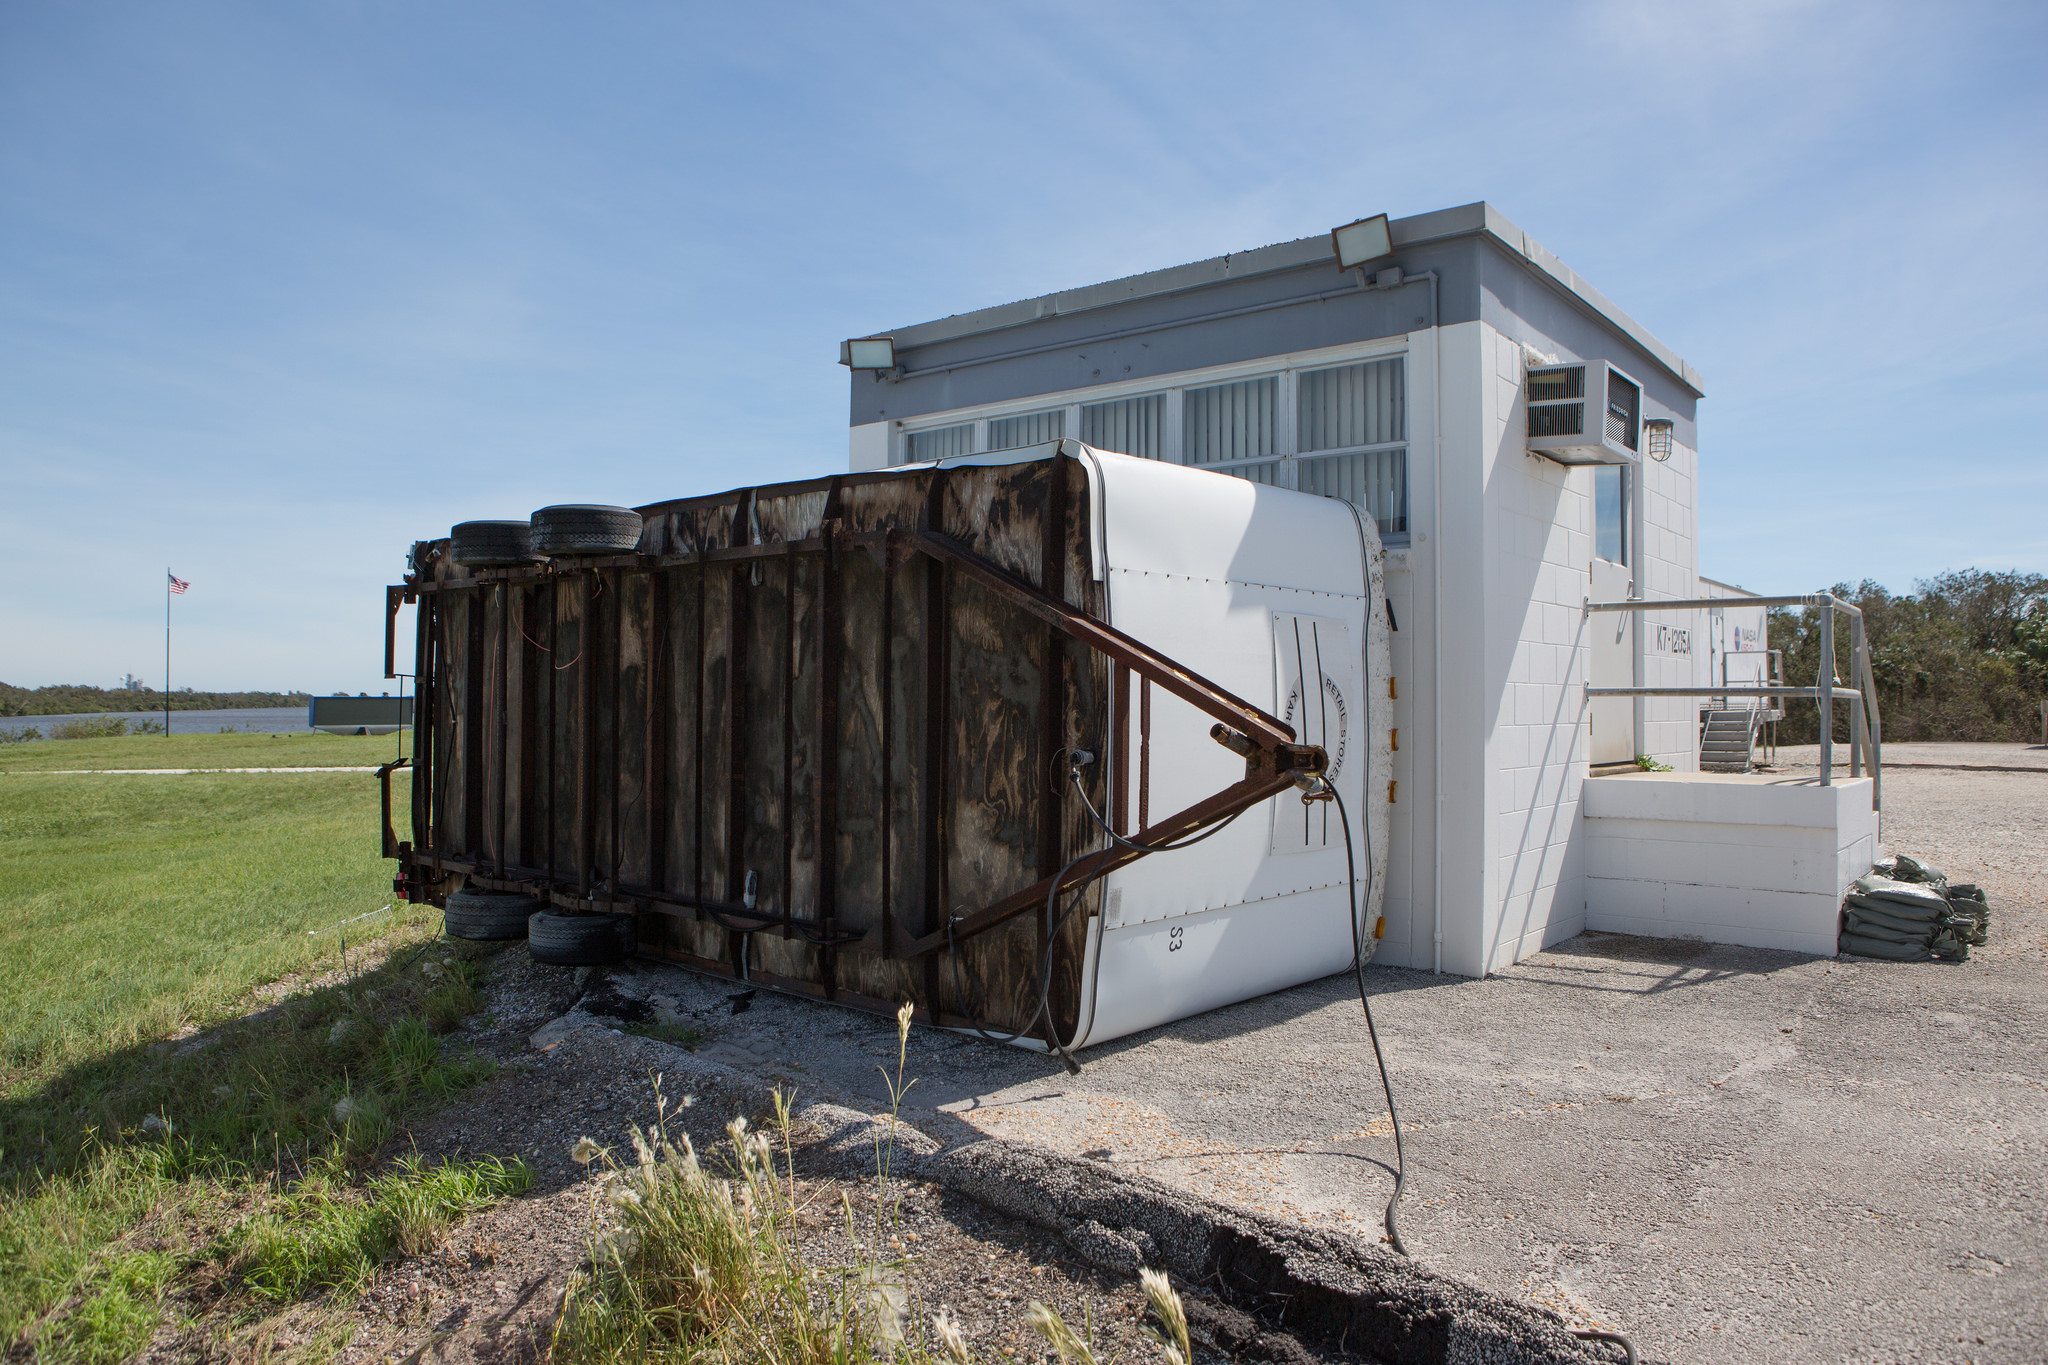 Hurricane force wind from Hurricane Matthew throw a concession stand up against the Spaceflight Now building at the LC 39 Press Site at the Kennedy Space Center in Florida on Oct. 7, 2016.  Credit: NASA/Cory Huston